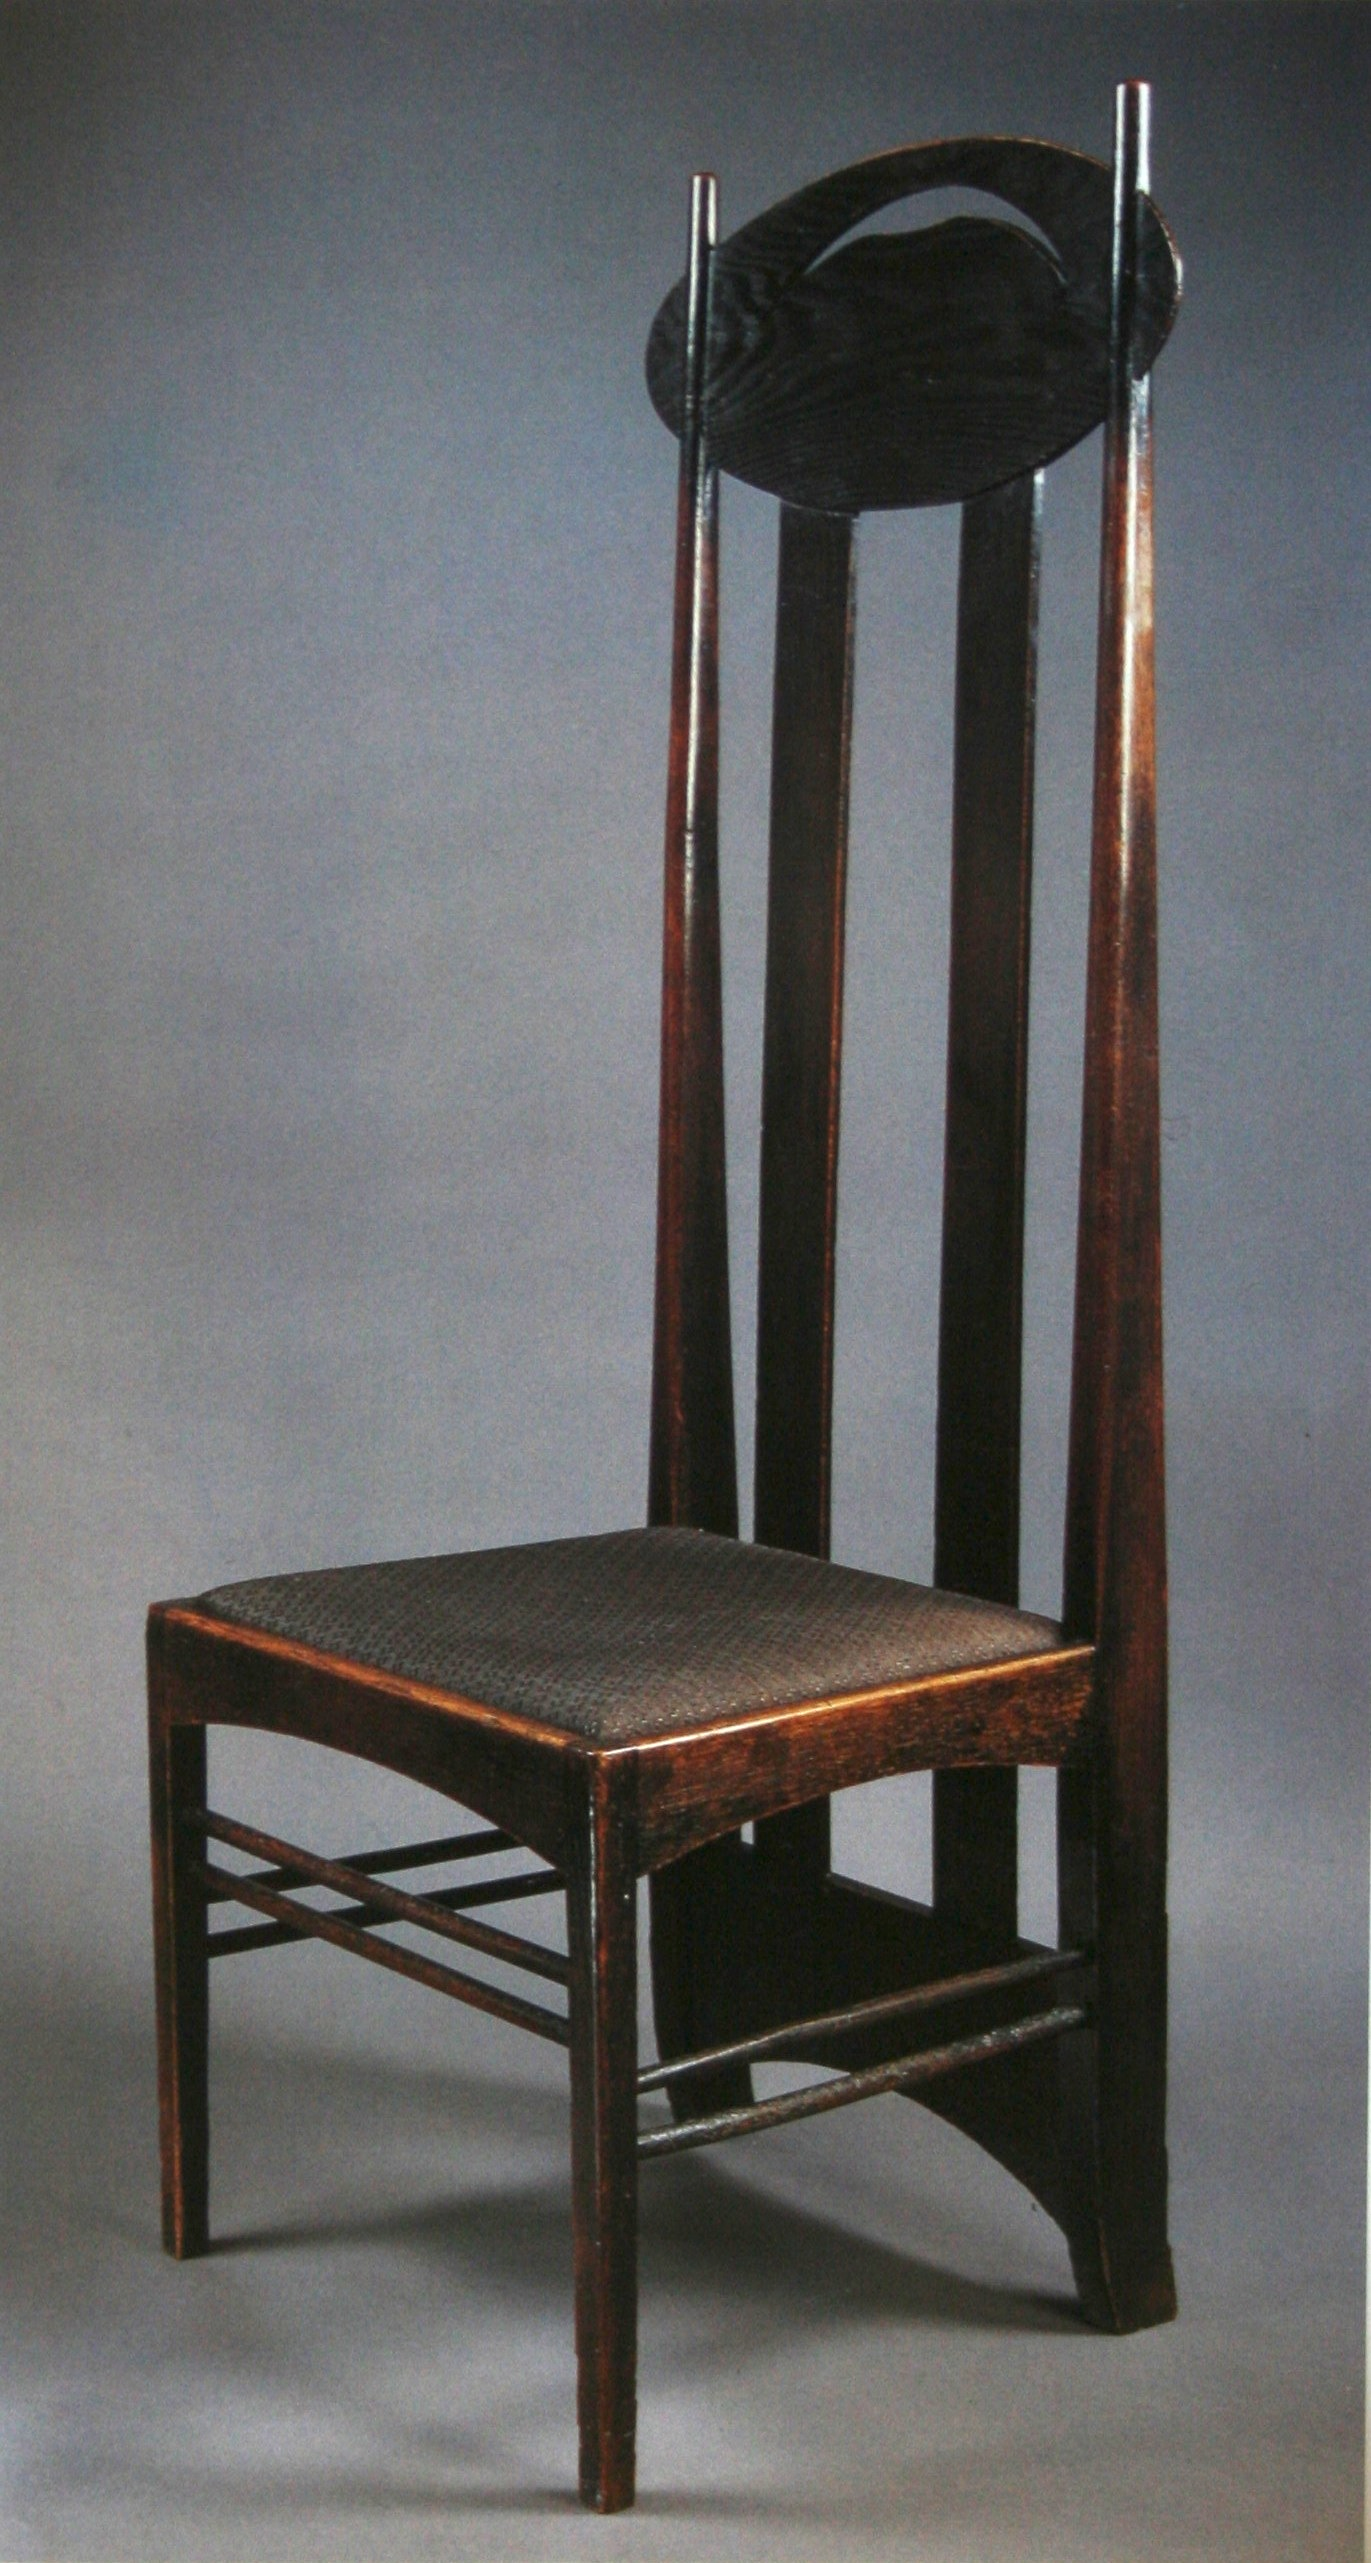 chair design charles rennie mackintosh. Black Bedroom Furniture Sets. Home Design Ideas